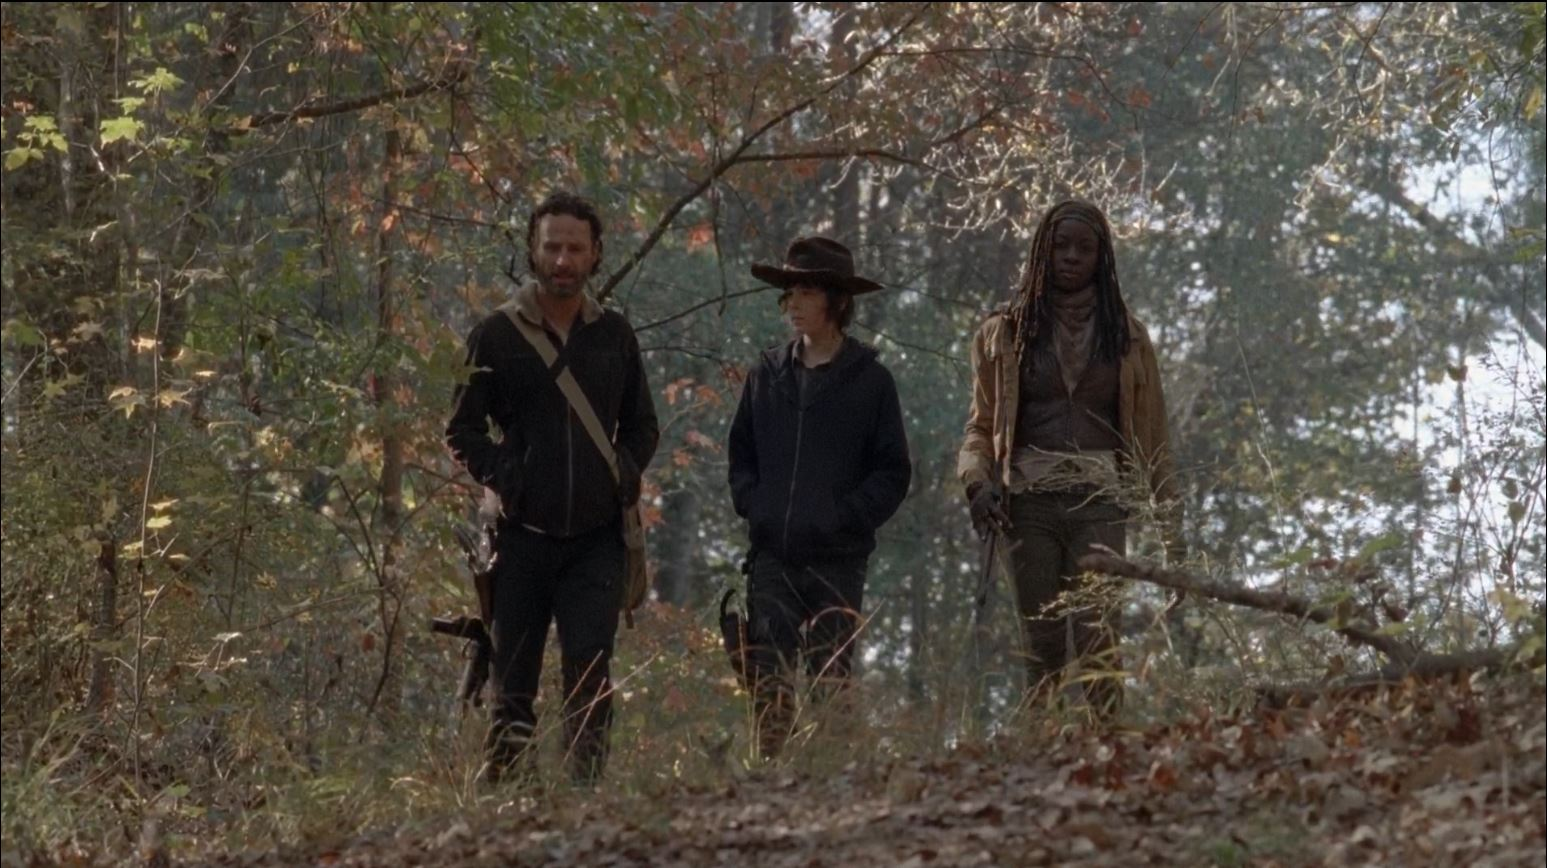 The Walking Dead season 4 finale -Rick, Michonne and Carl in the road The Walking Dead Season 4 Finale 'A' Review